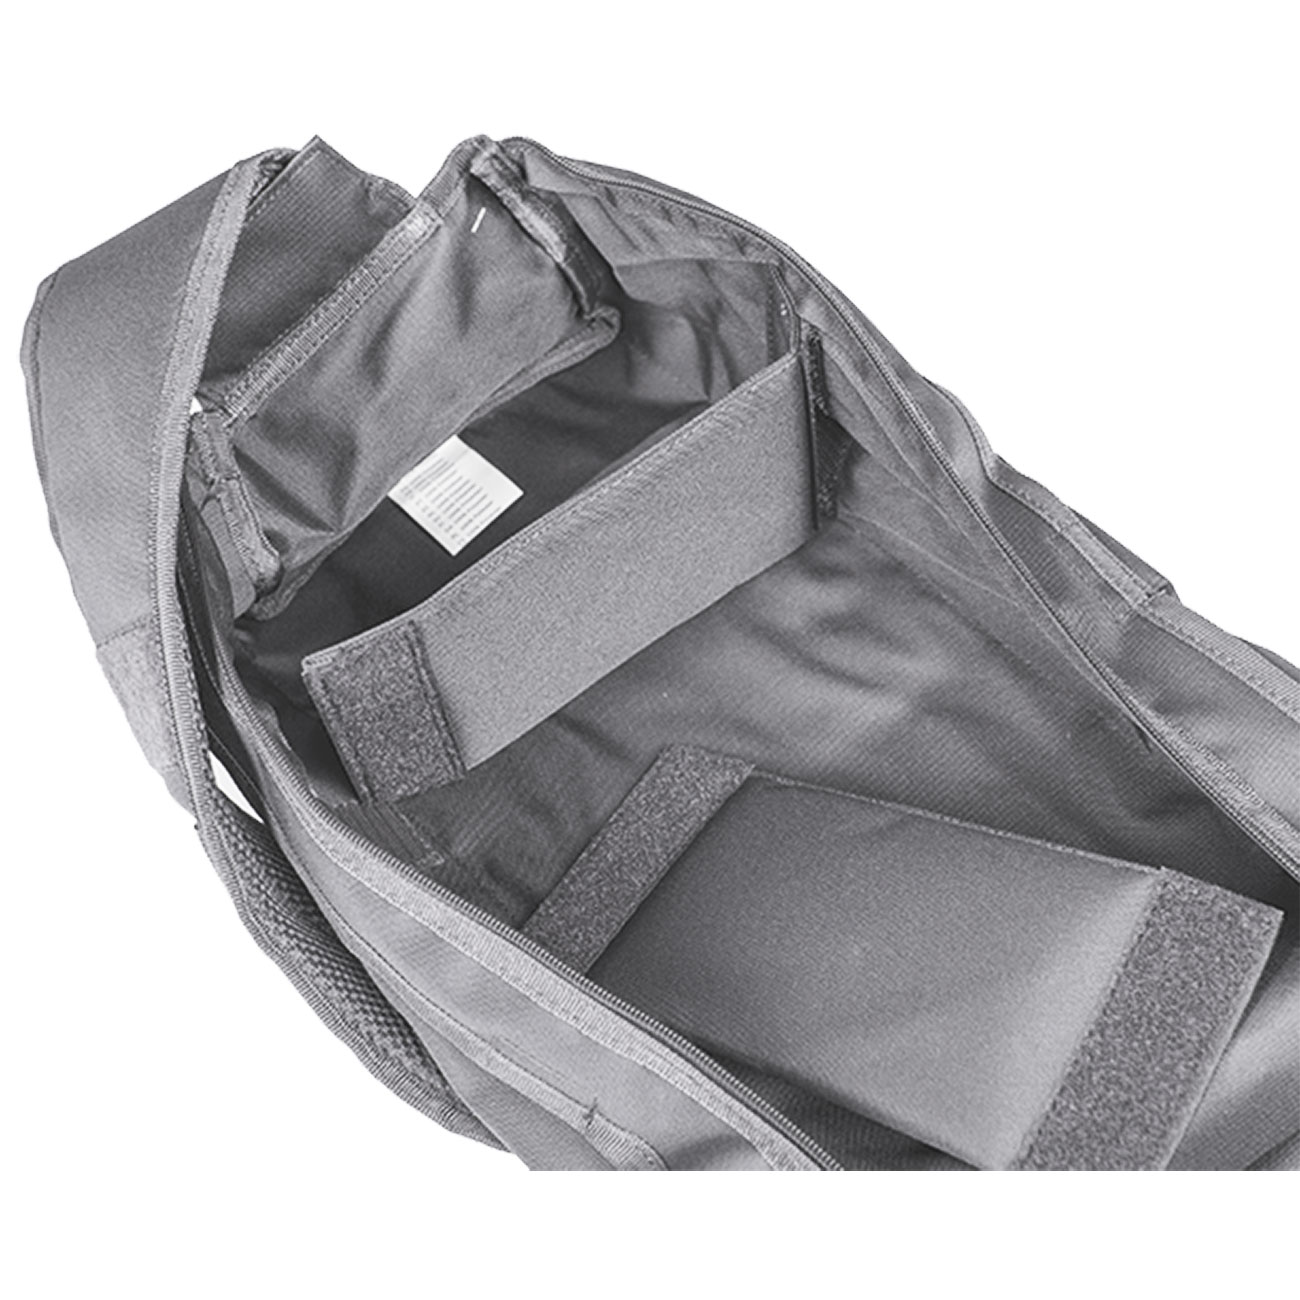 Mil-Tec Sling Bag Tanker urban grey 3